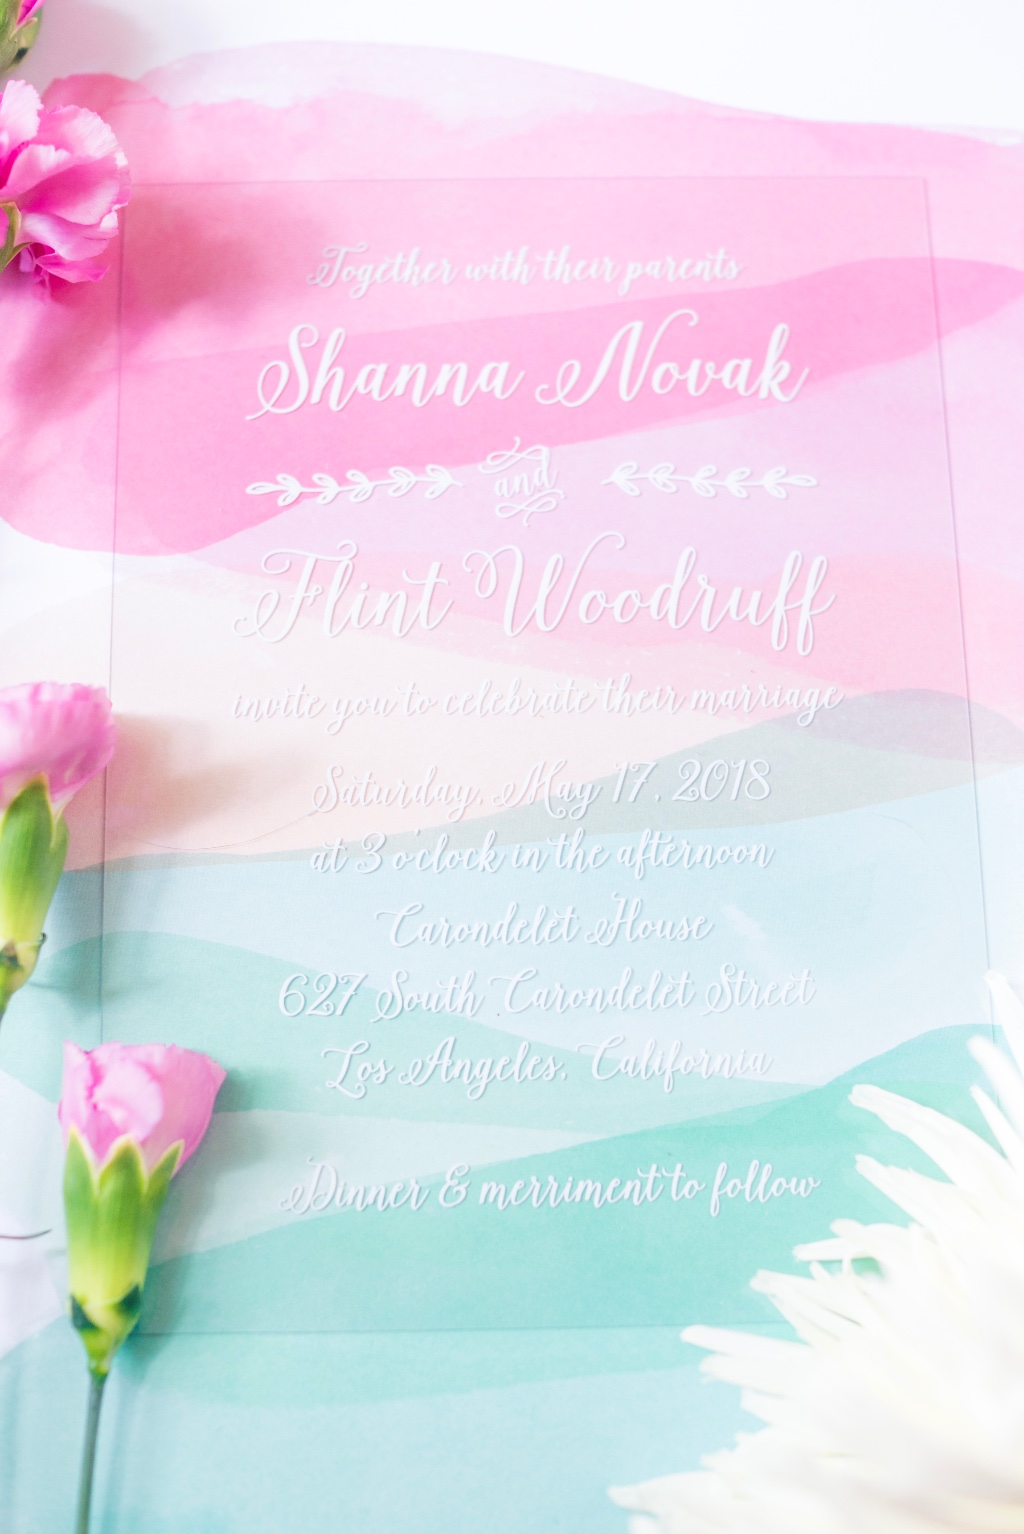 Colorfully clear! Clear Wedding Invitations allow you to put any twist on envelope choices, enclosure card styles, and wedding day